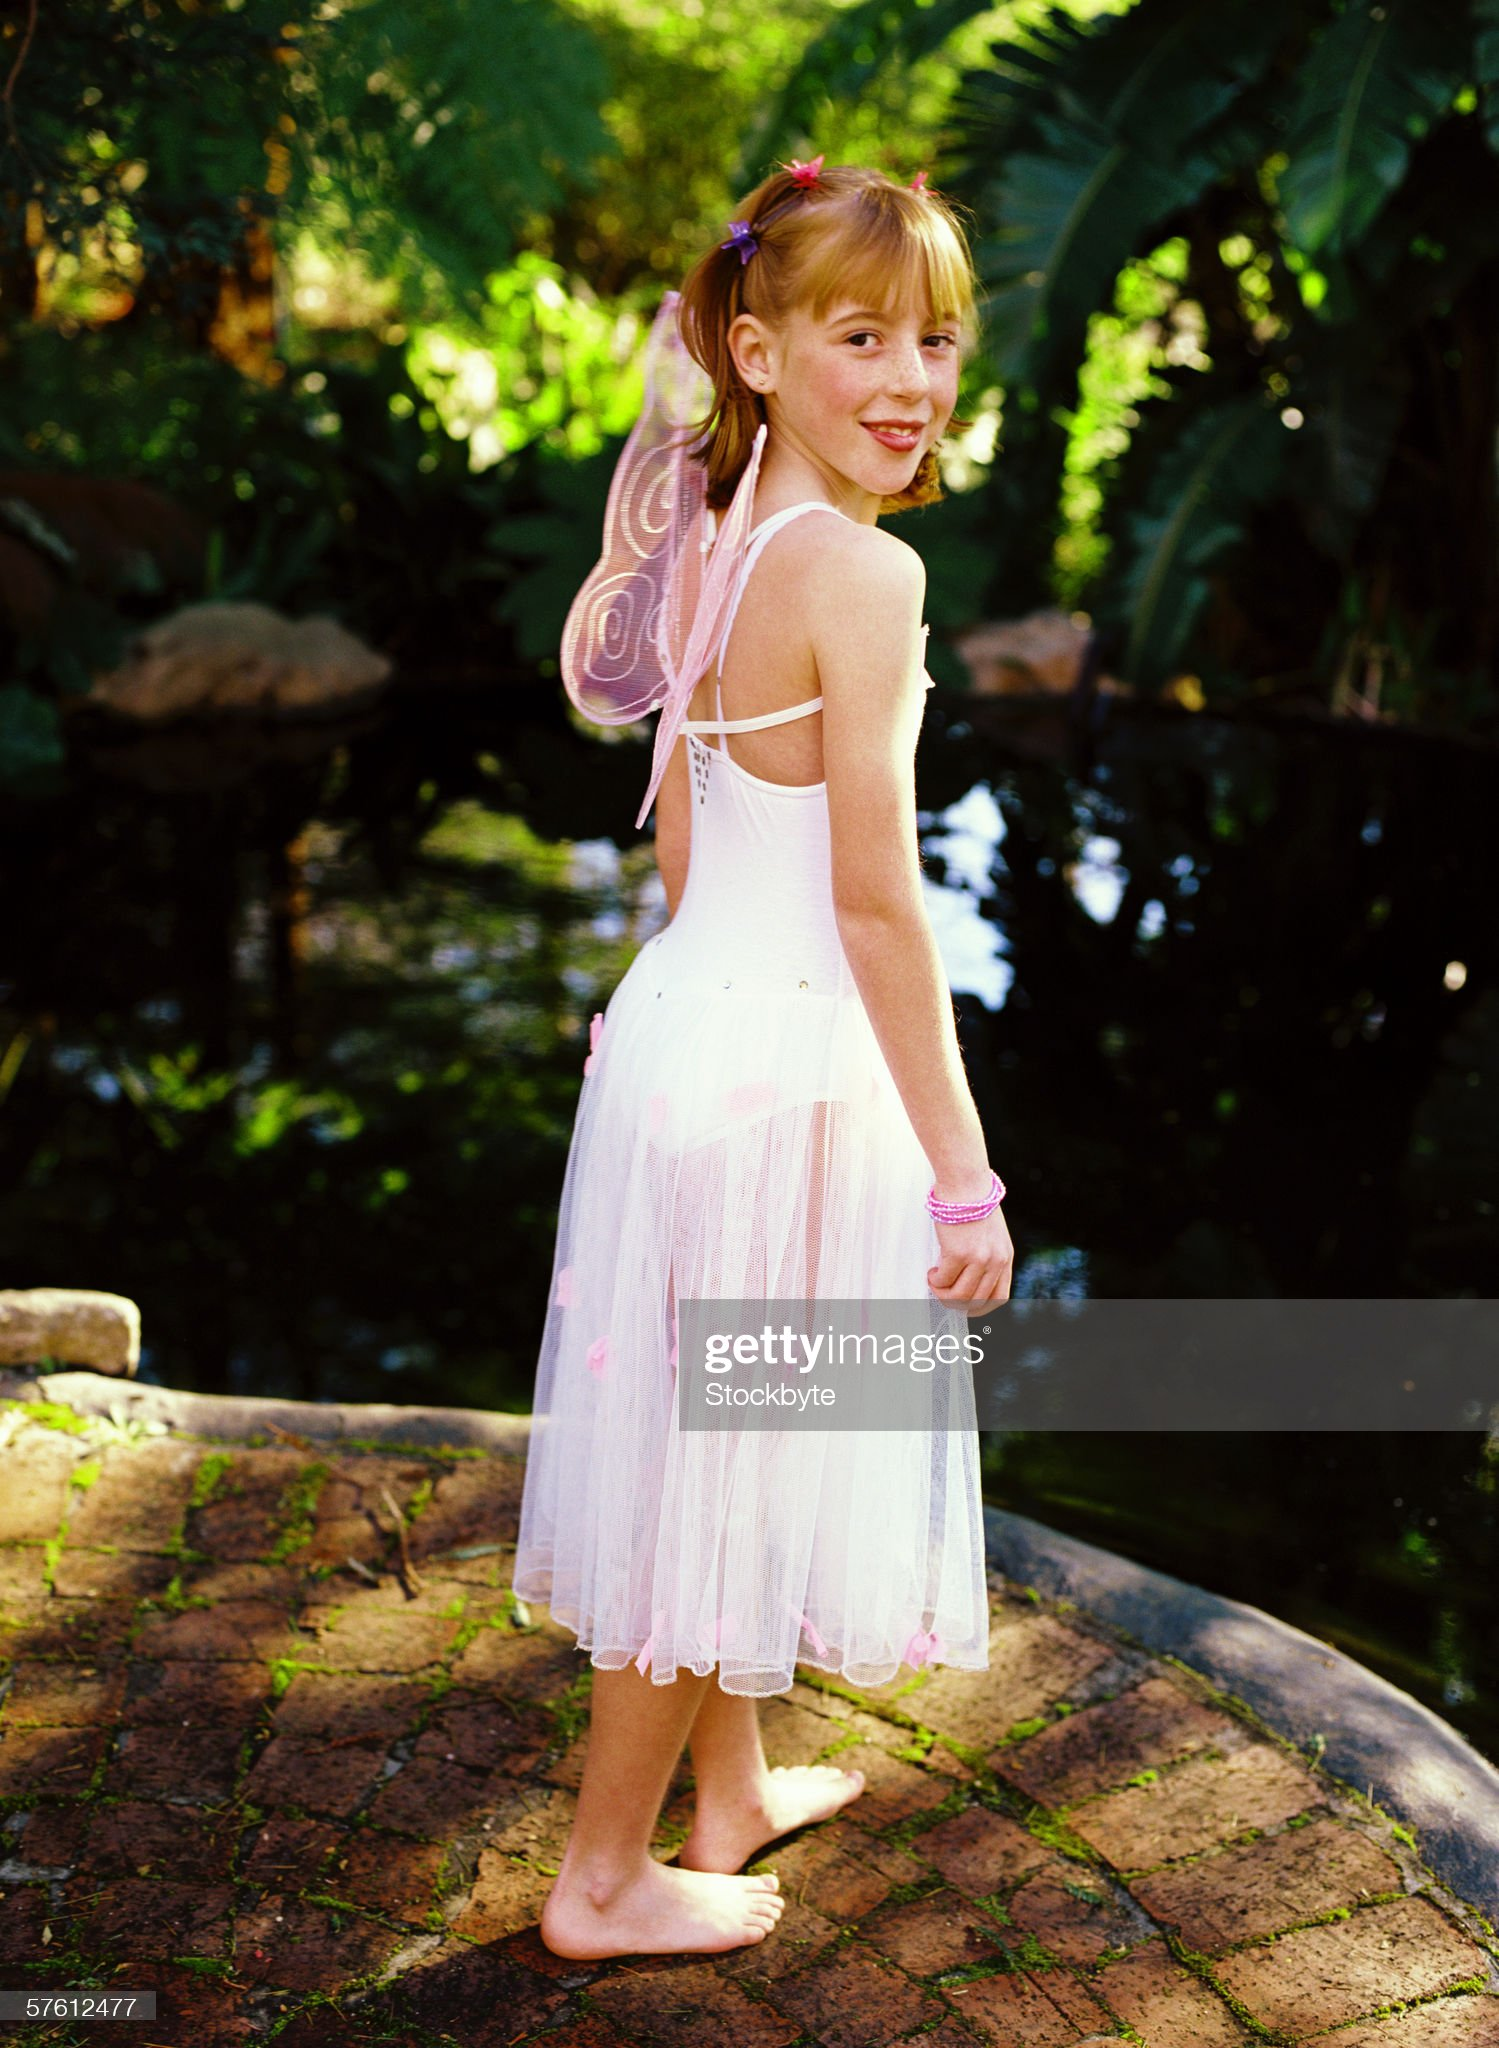 https://media.gettyimages.com/photos/rear-view-of-a-young-girl-wearing-a-fairy-costume-picture-id57612477?s=2048x2048